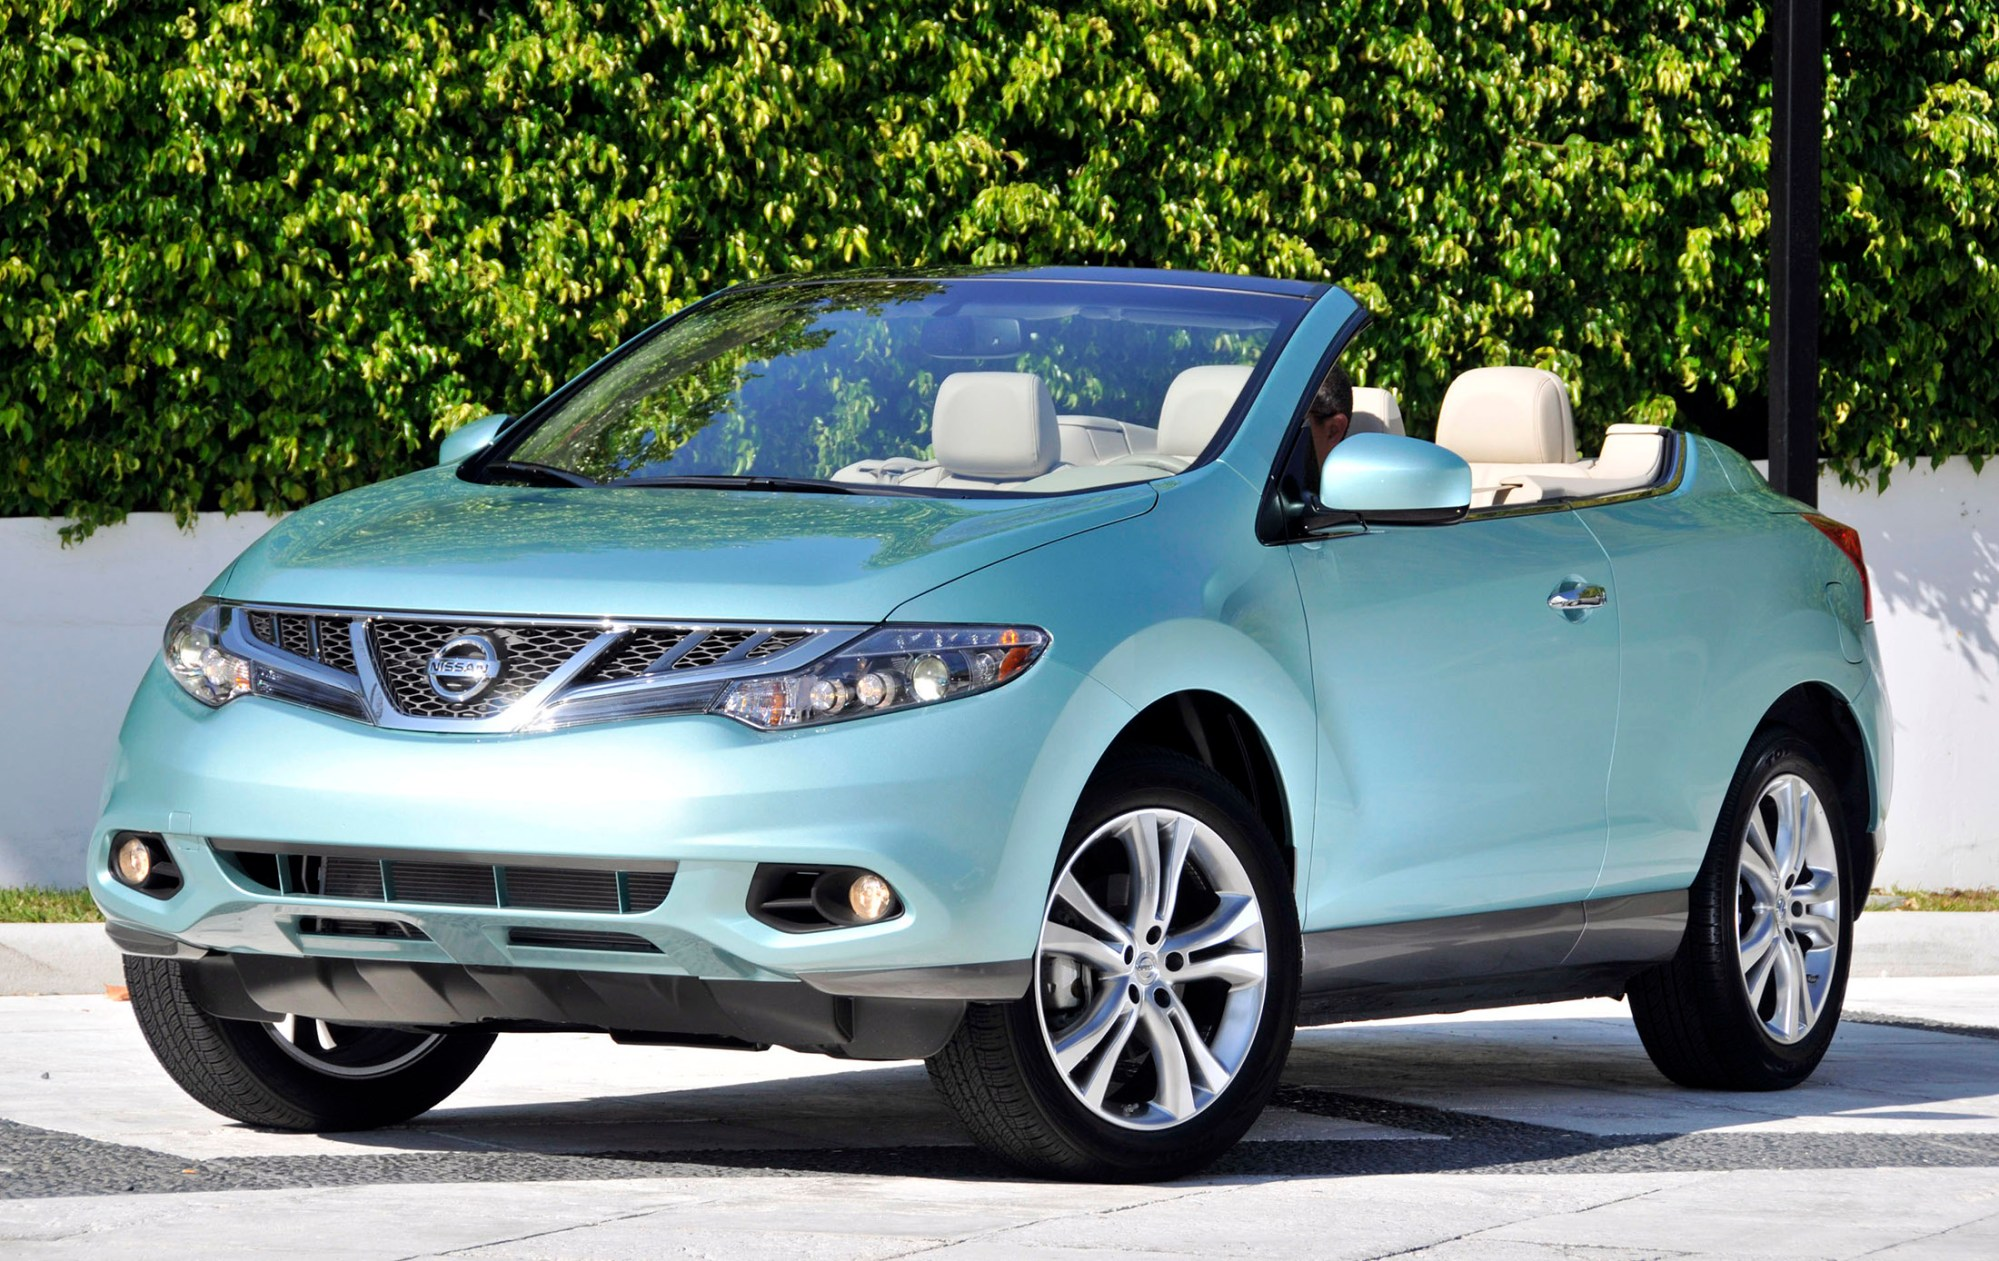 hight resolution of the weird nissan murano crosscabriolet is still in high demand bloomberg